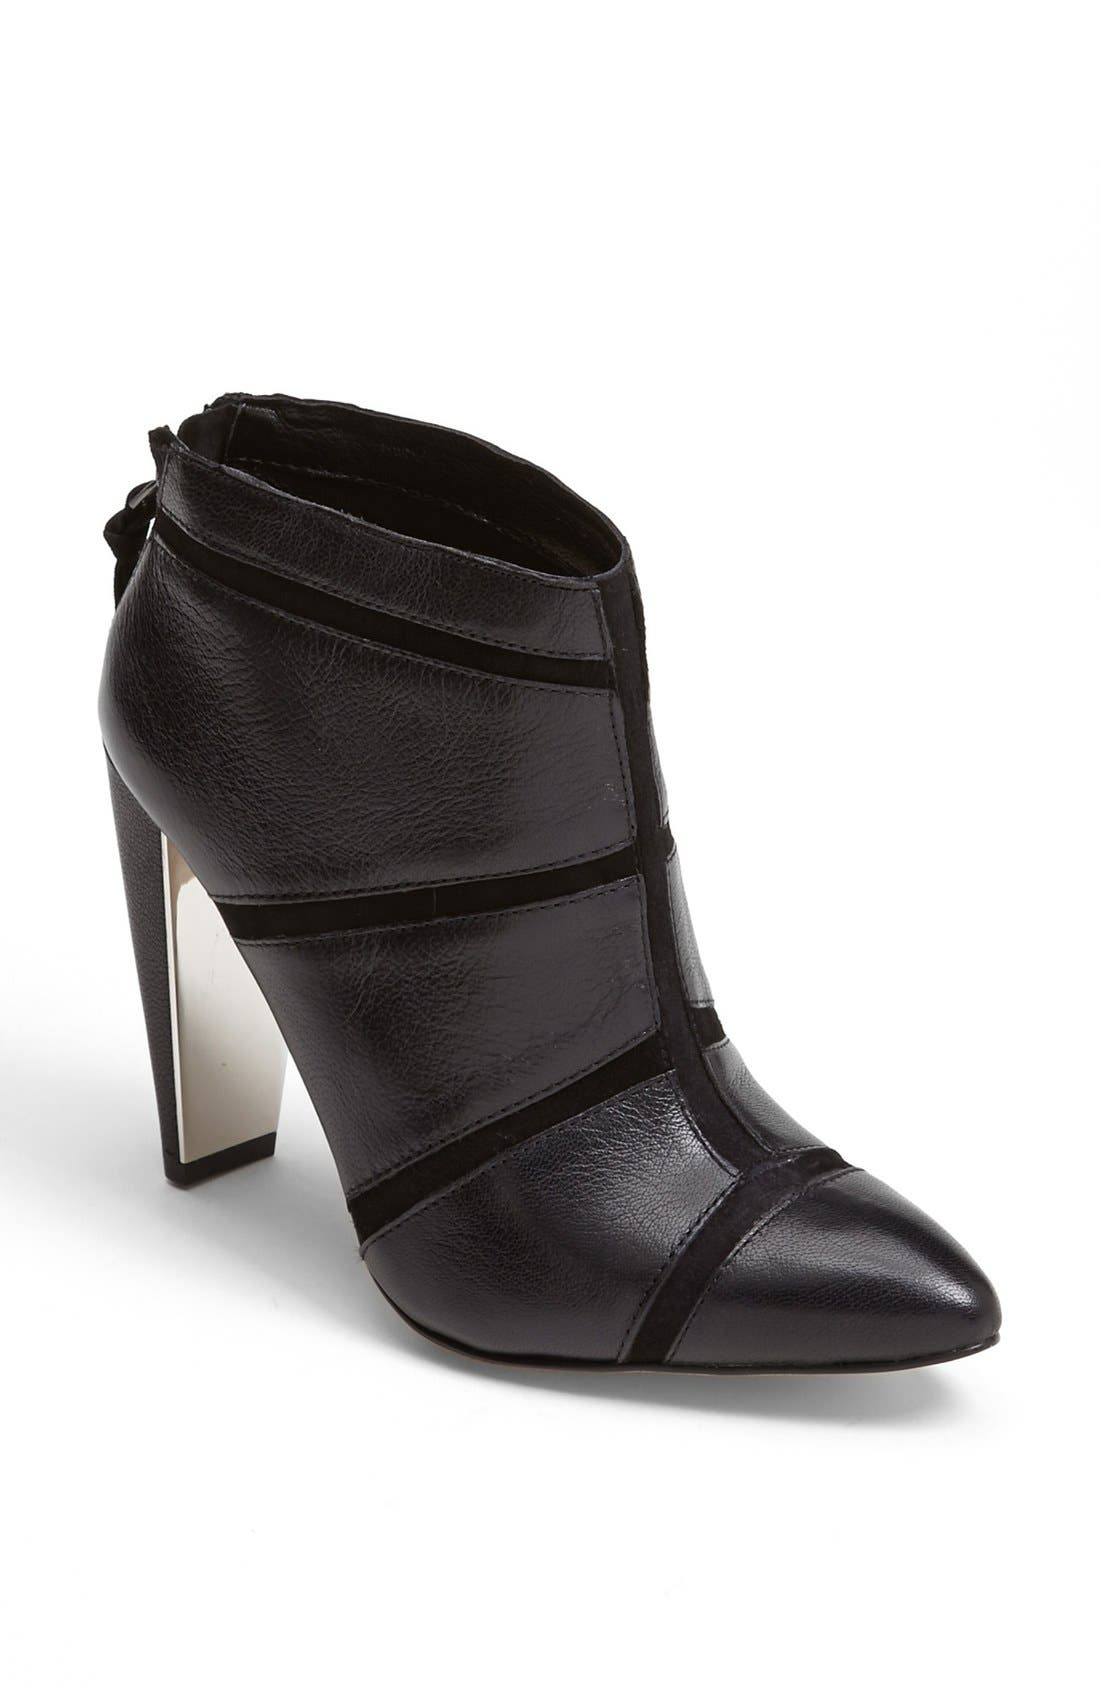 Main Image - French Connection 'Maddy' Bootie